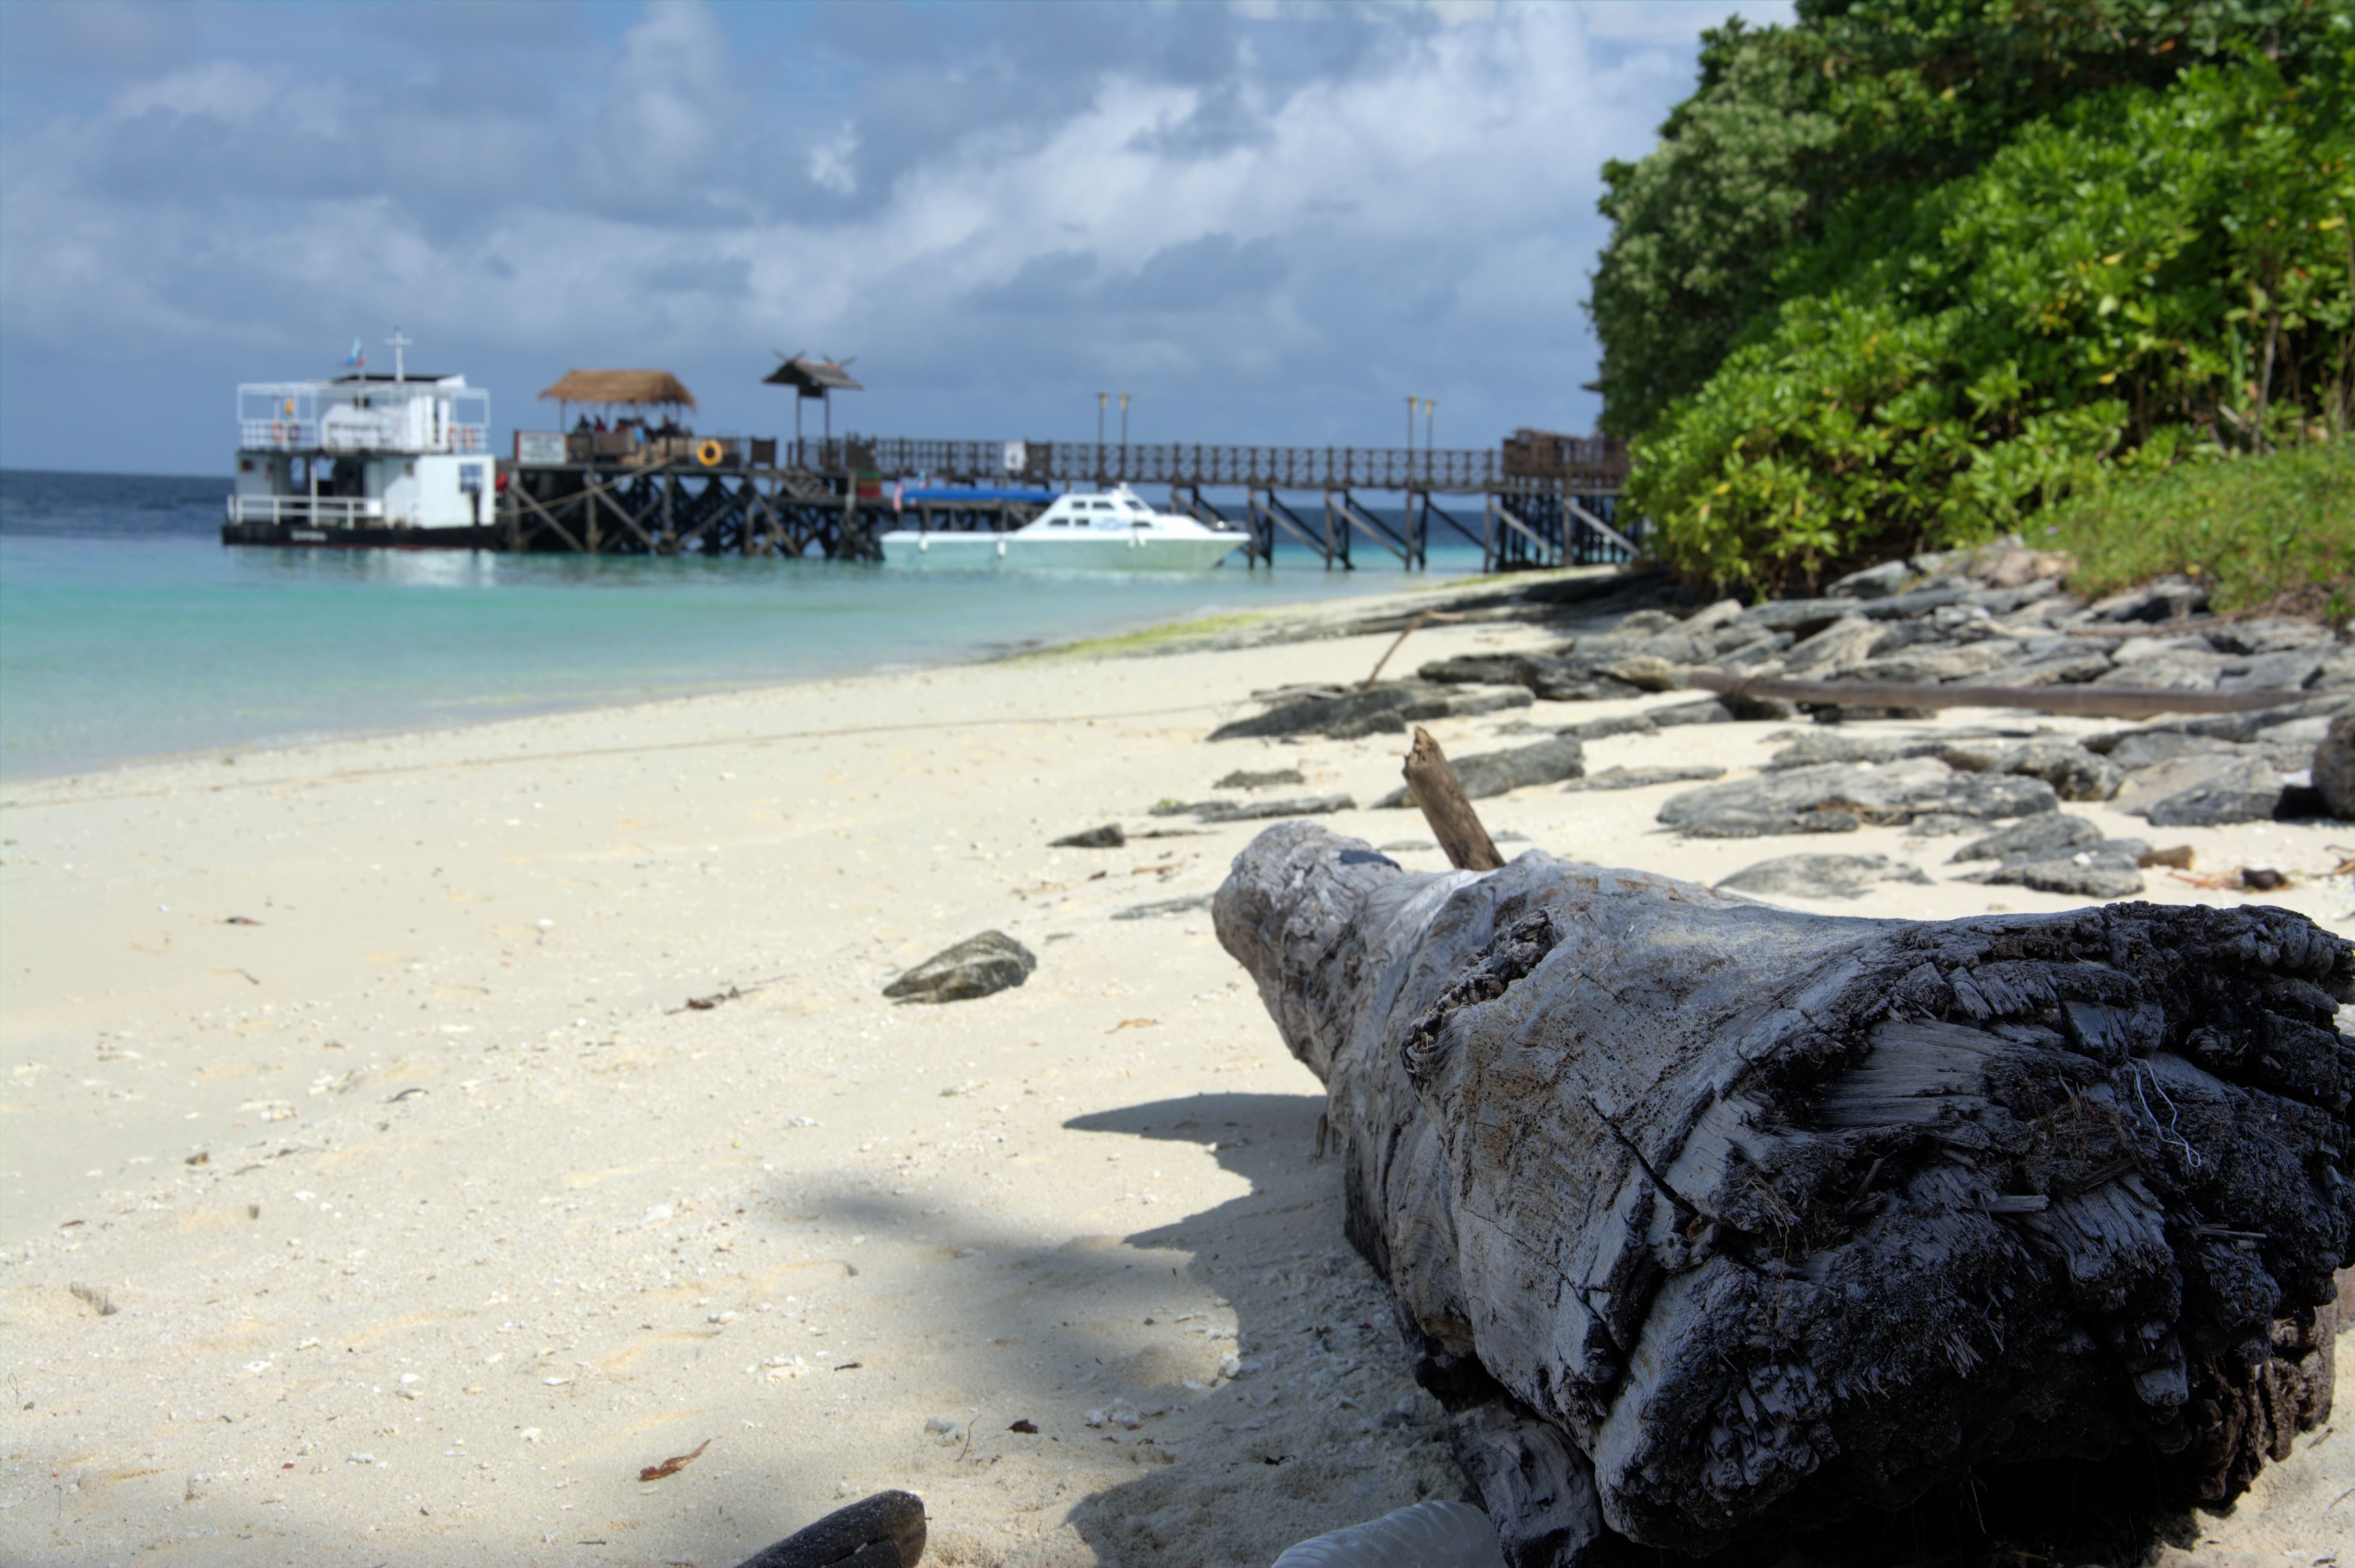 Fallen tree on island of Mataking, Sabah, Malaysia; with jetty and boats in the background.